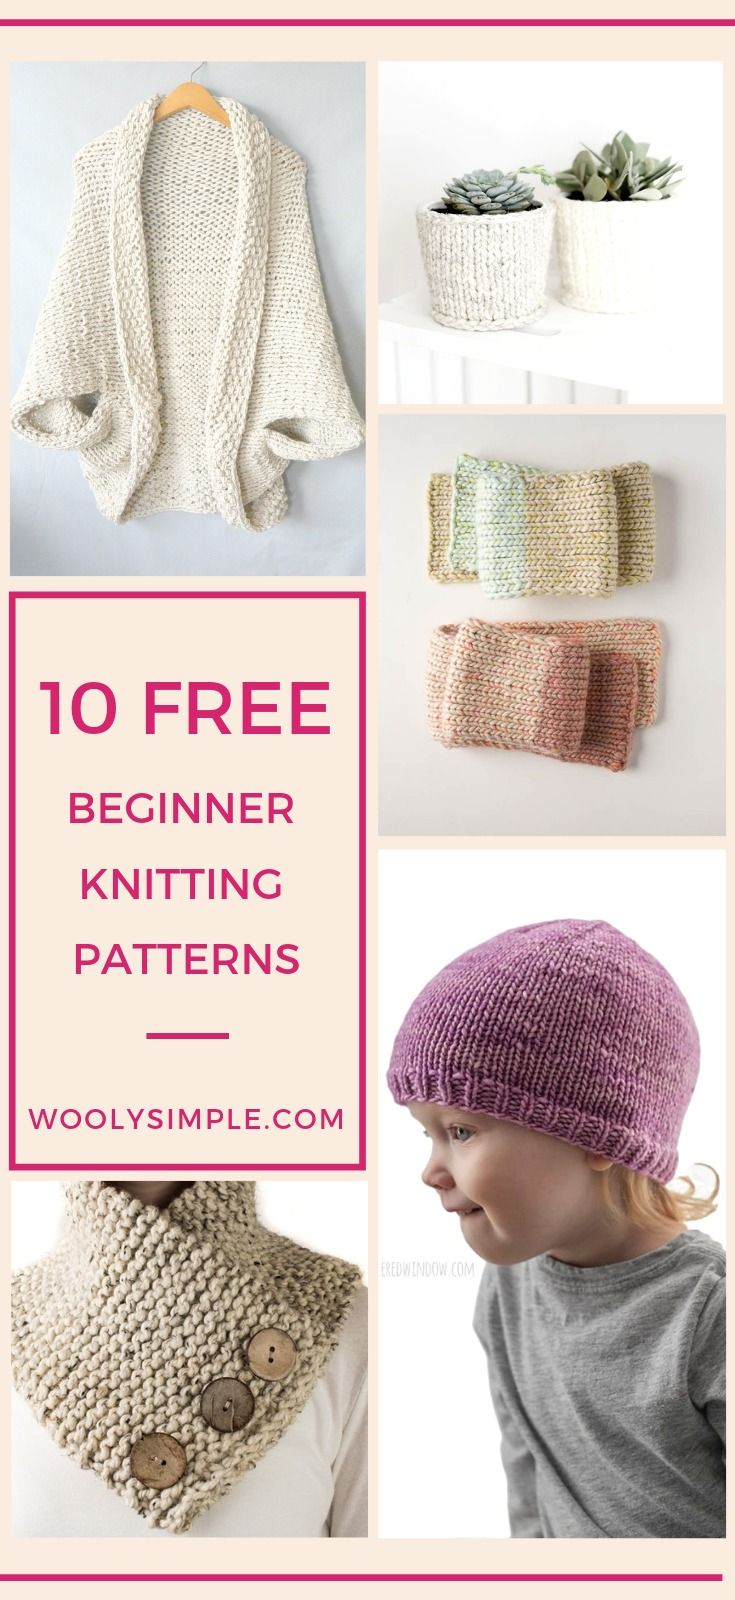 Free Knitting Patterns for Absolute Beginner: Round Up of the Easiest Patterns